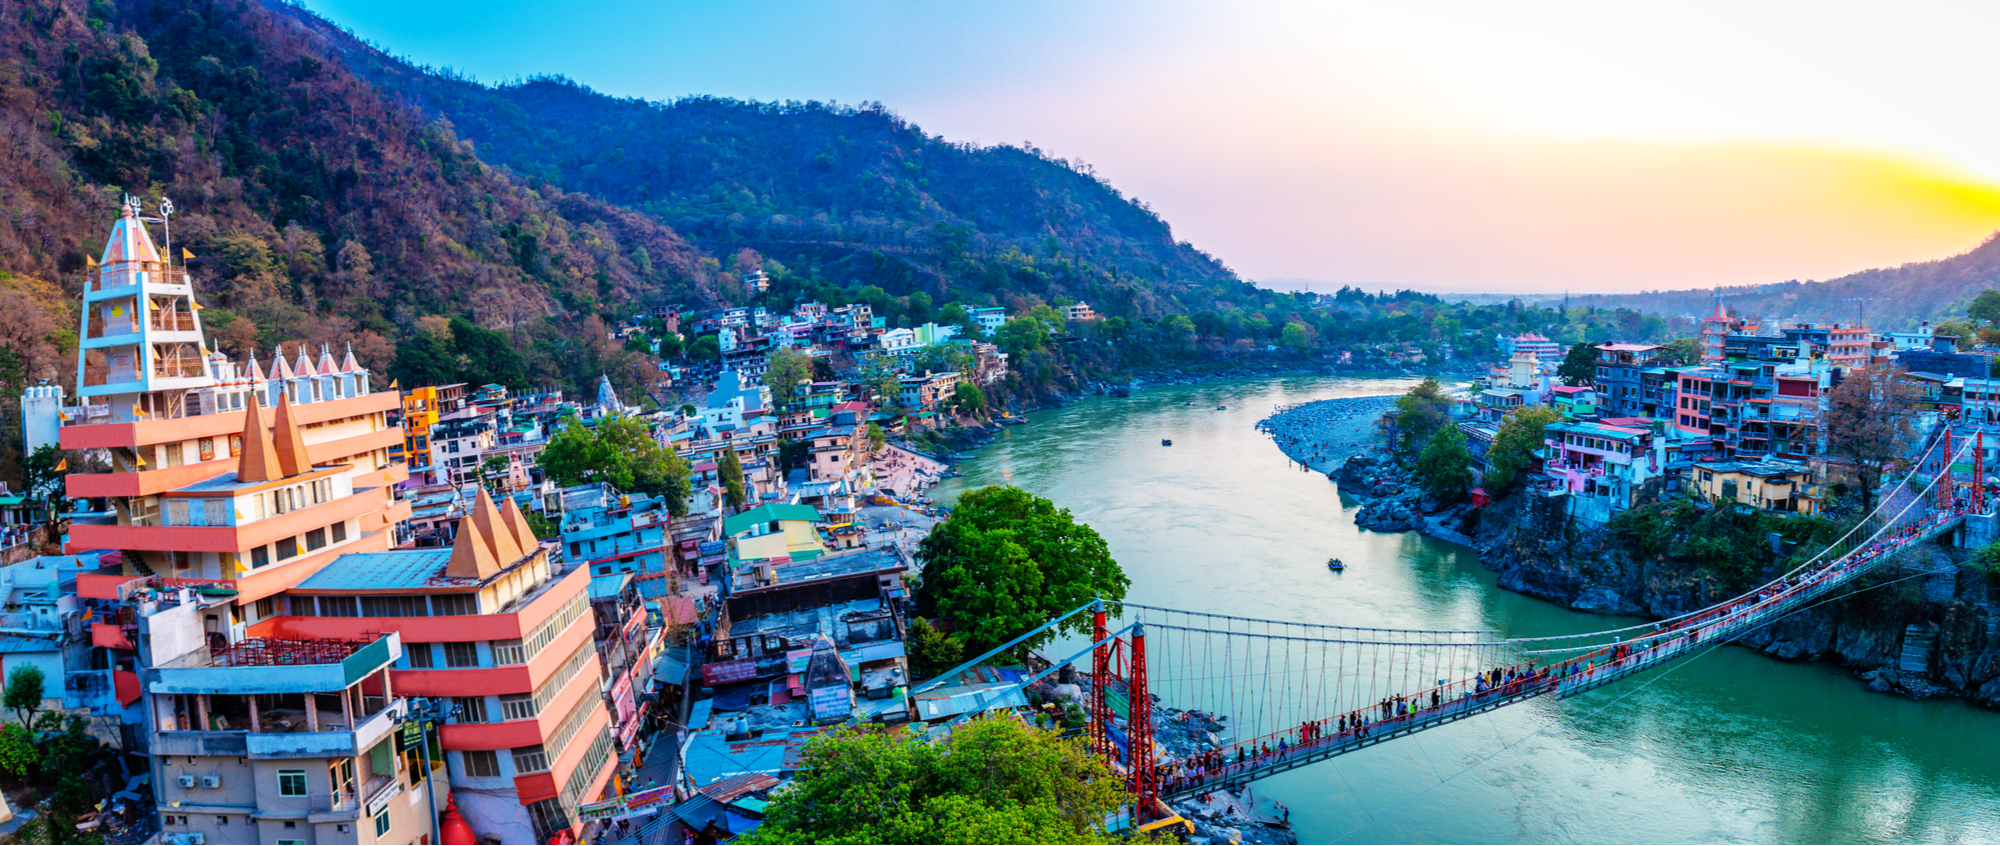 View of Rishikesh, Yoga Capital of the World